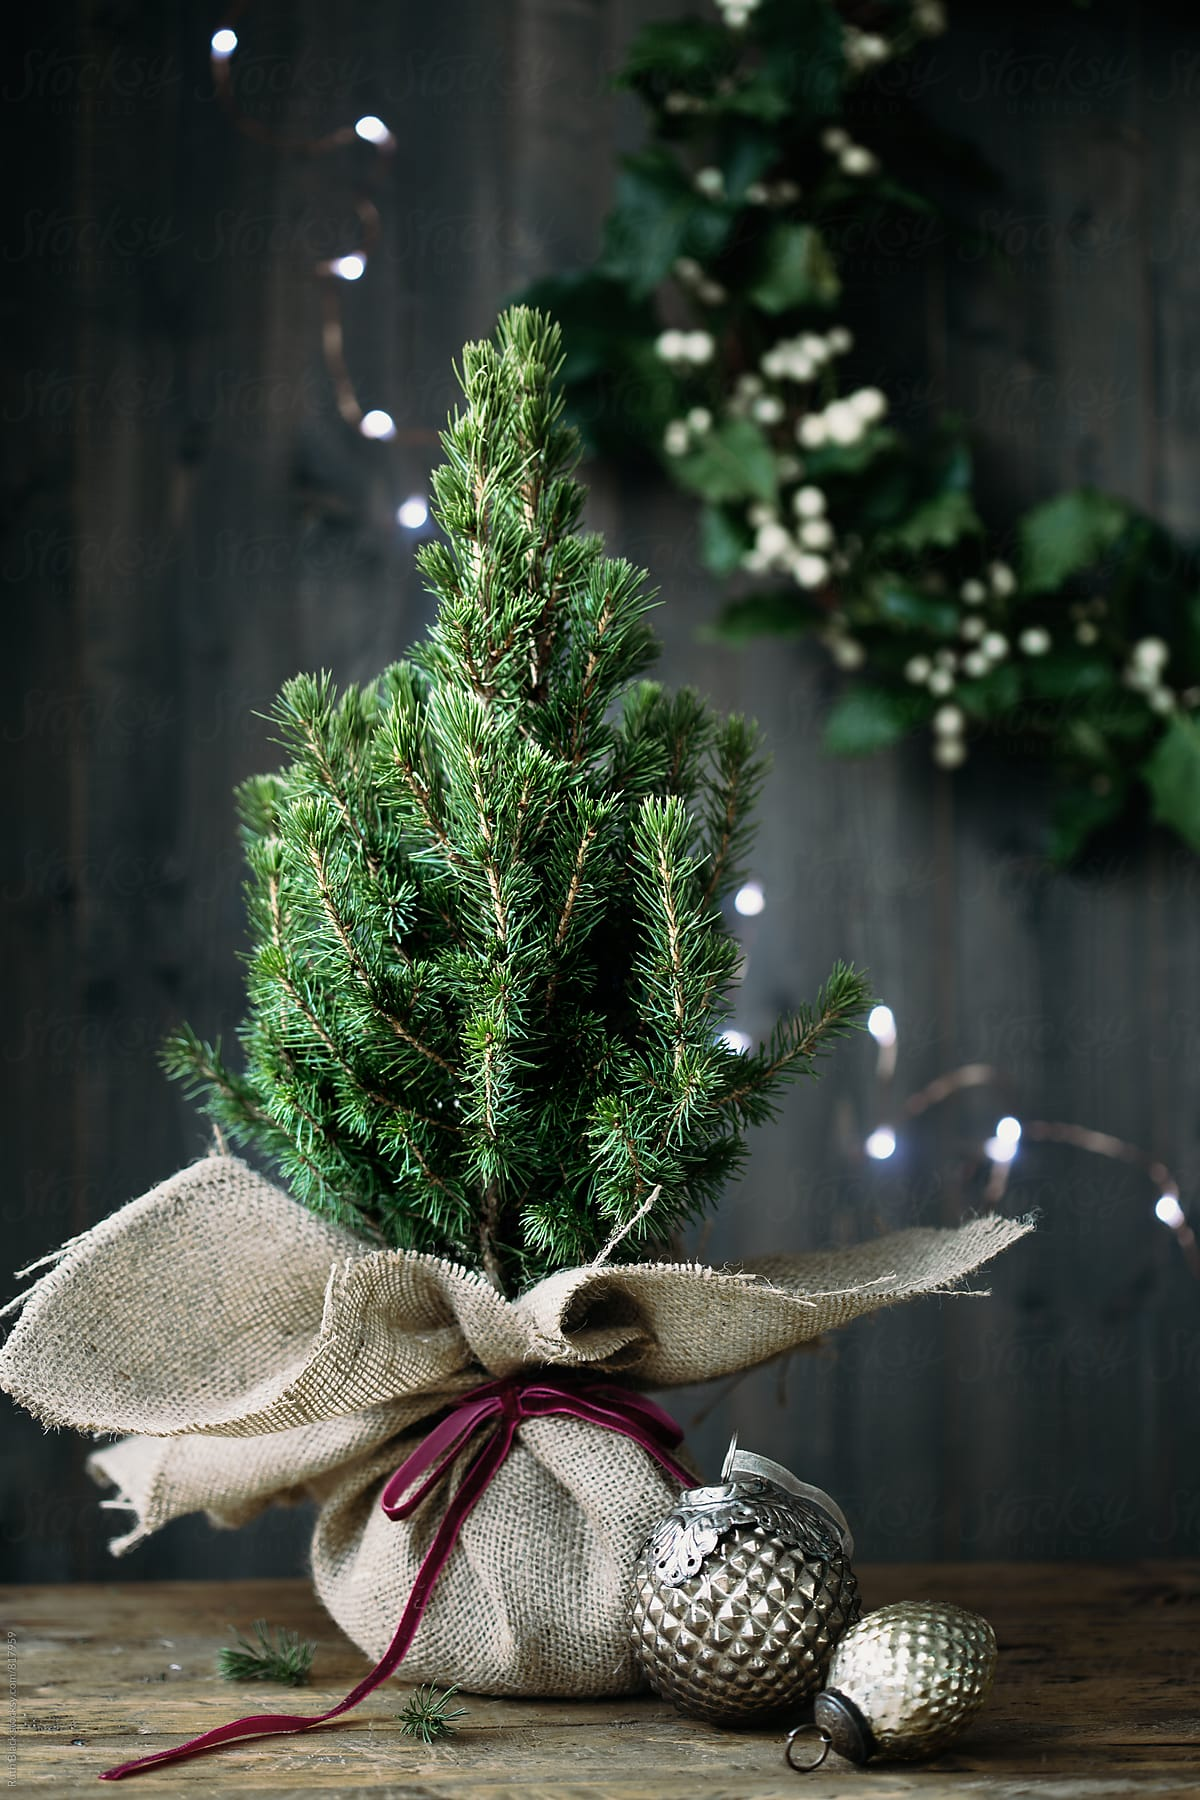 Christmas Tree Wrapped In Burlap By Ruth Black Christmas Christmas Tree Stocksy United